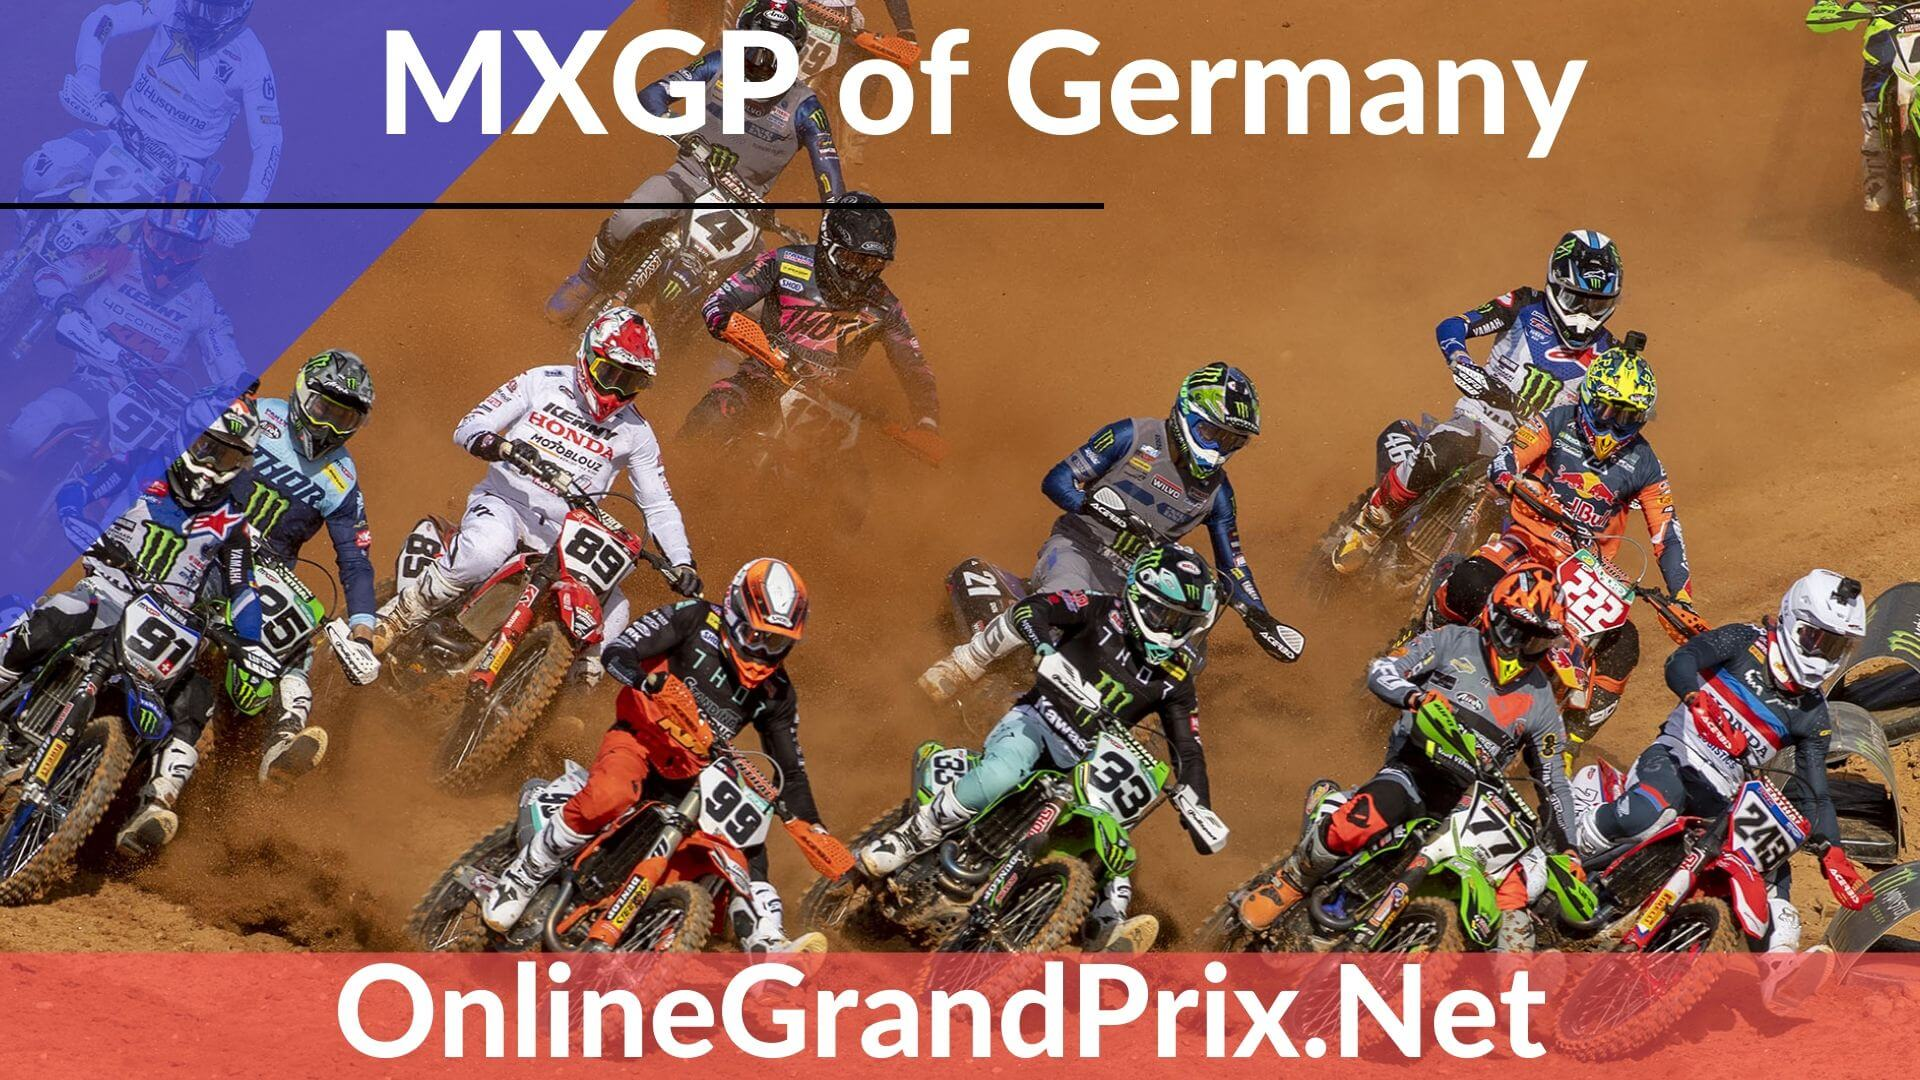 Germany MXGP Live Stream 2020 | FIM MotoCross WC